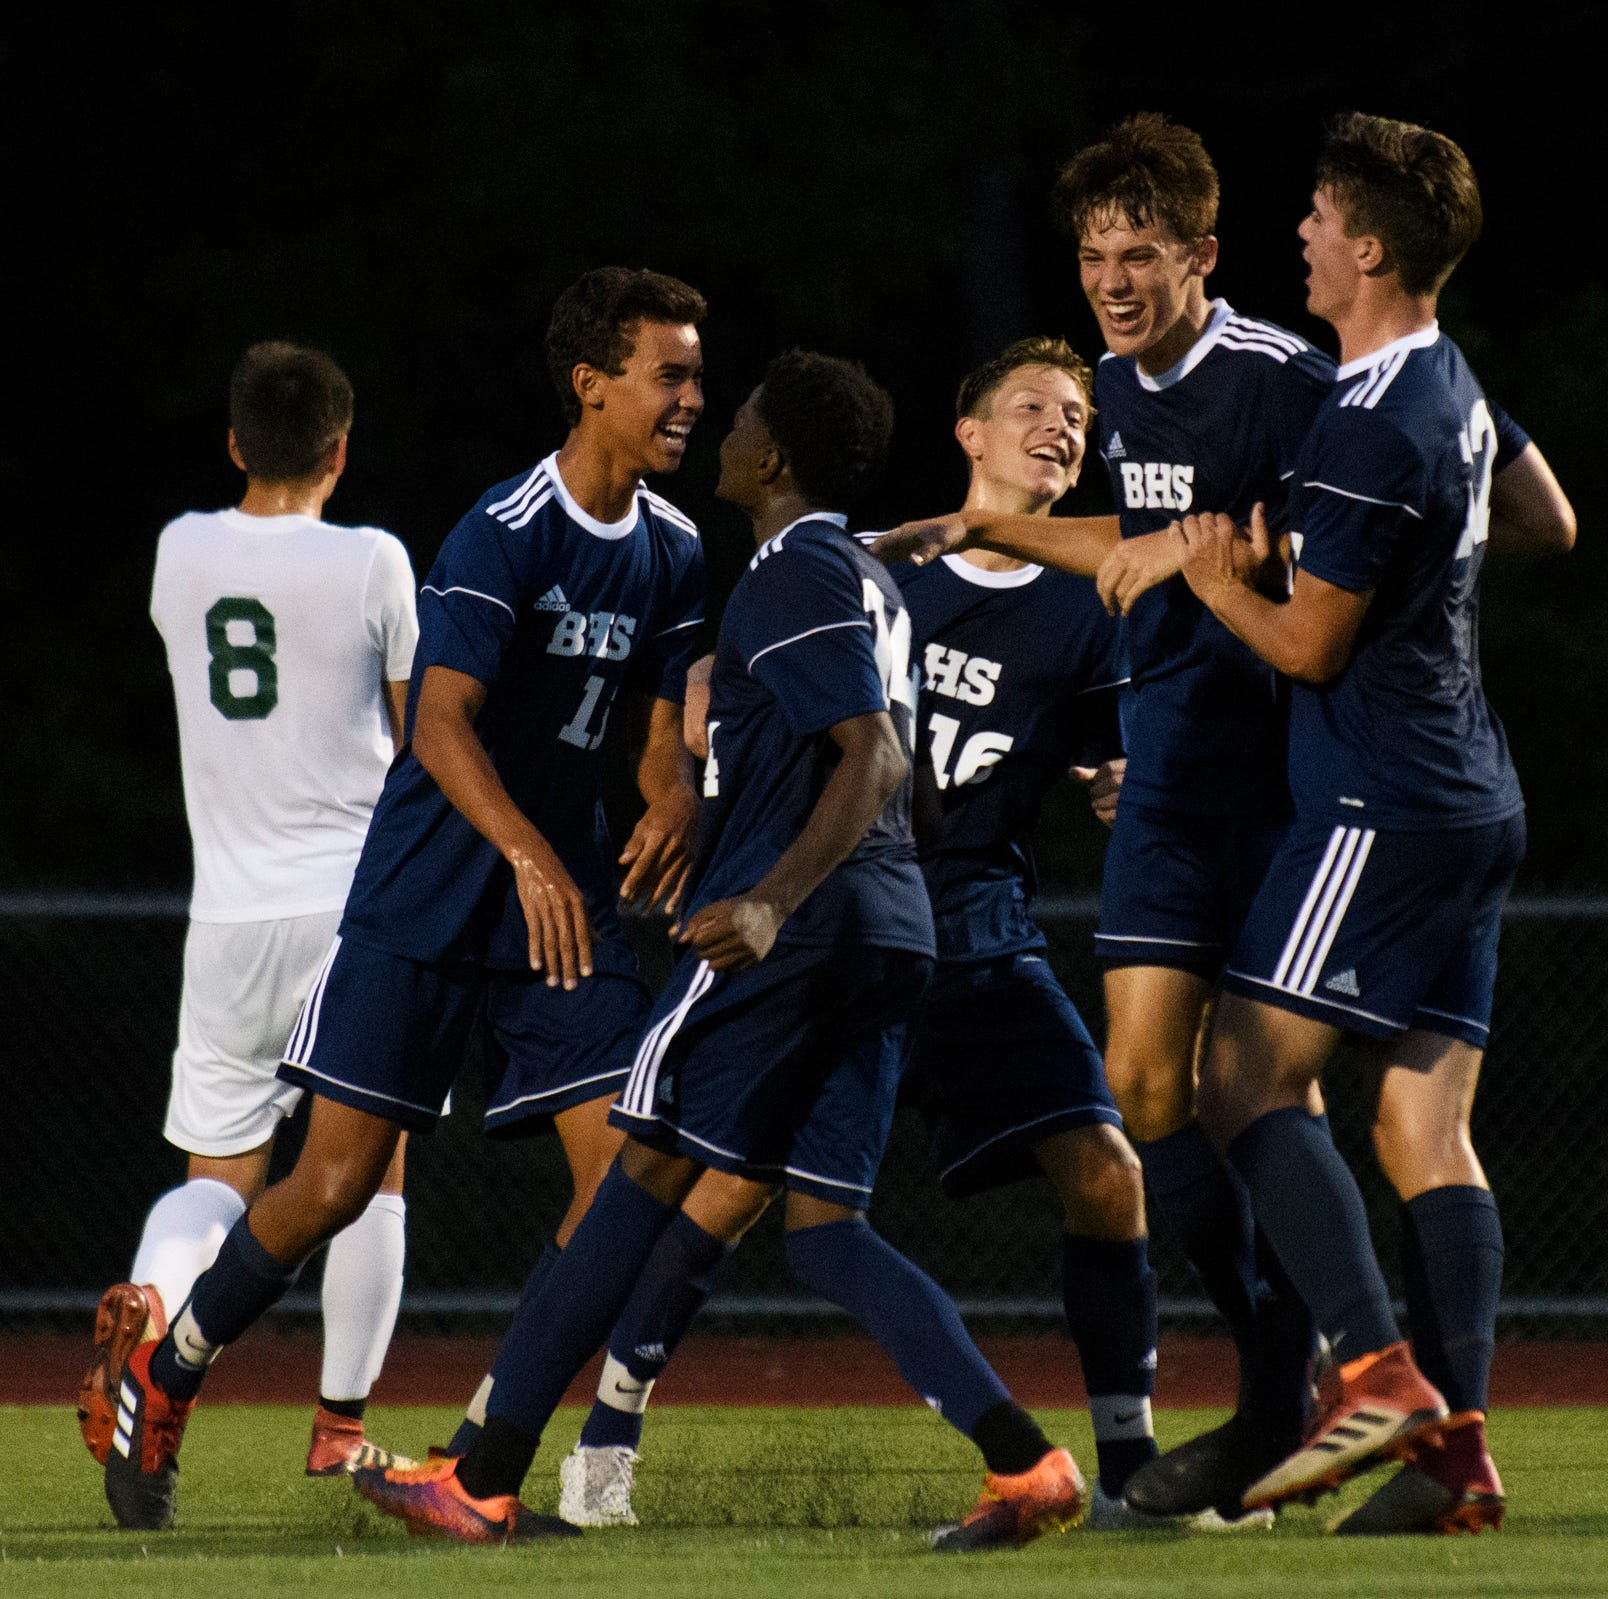 Vermont boys soccer: Varsity Insider Week 2 power rankings